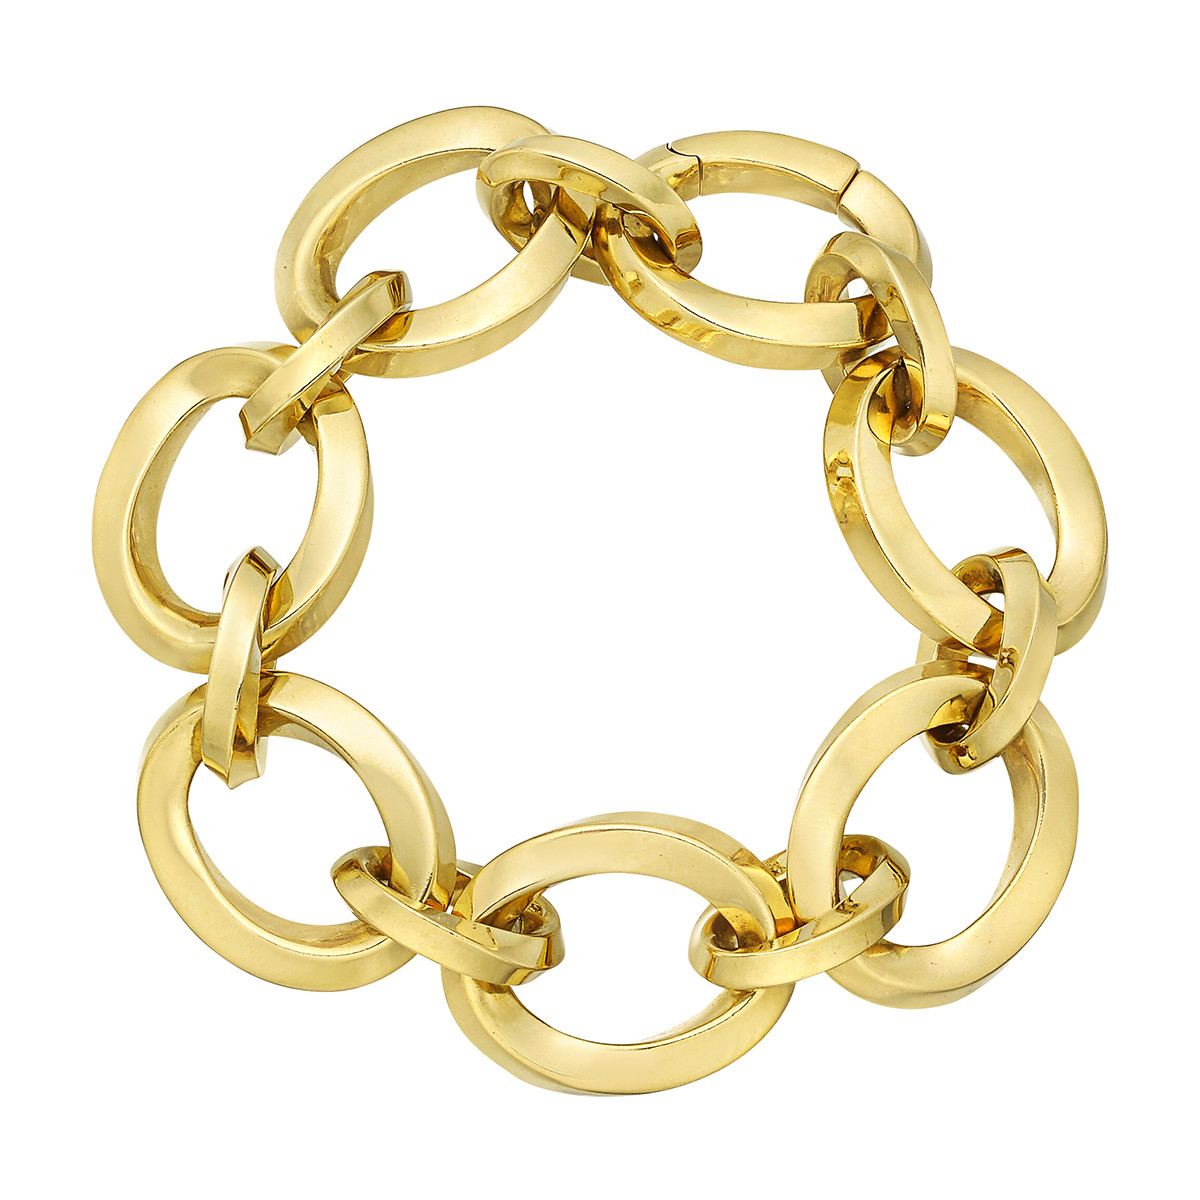 18k Yellow Gold Twisted Oval Link Bracelet